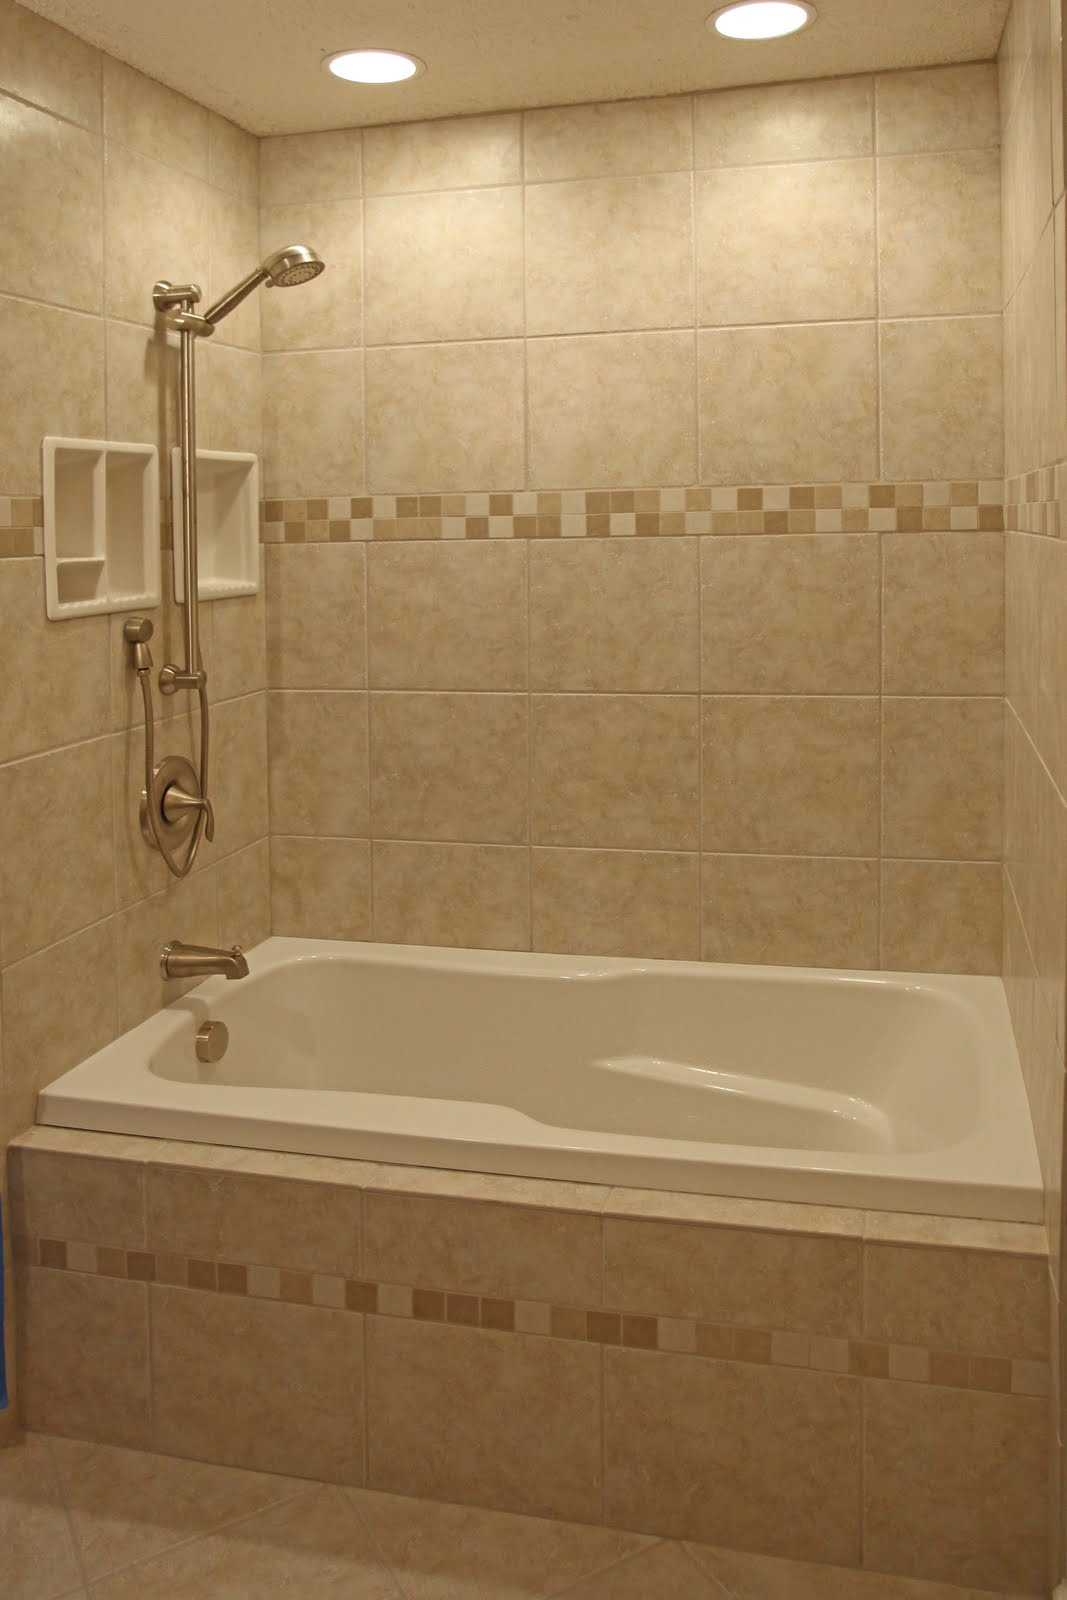 Bathroom remodeling design ideas tile shower niches for Design your bathroom